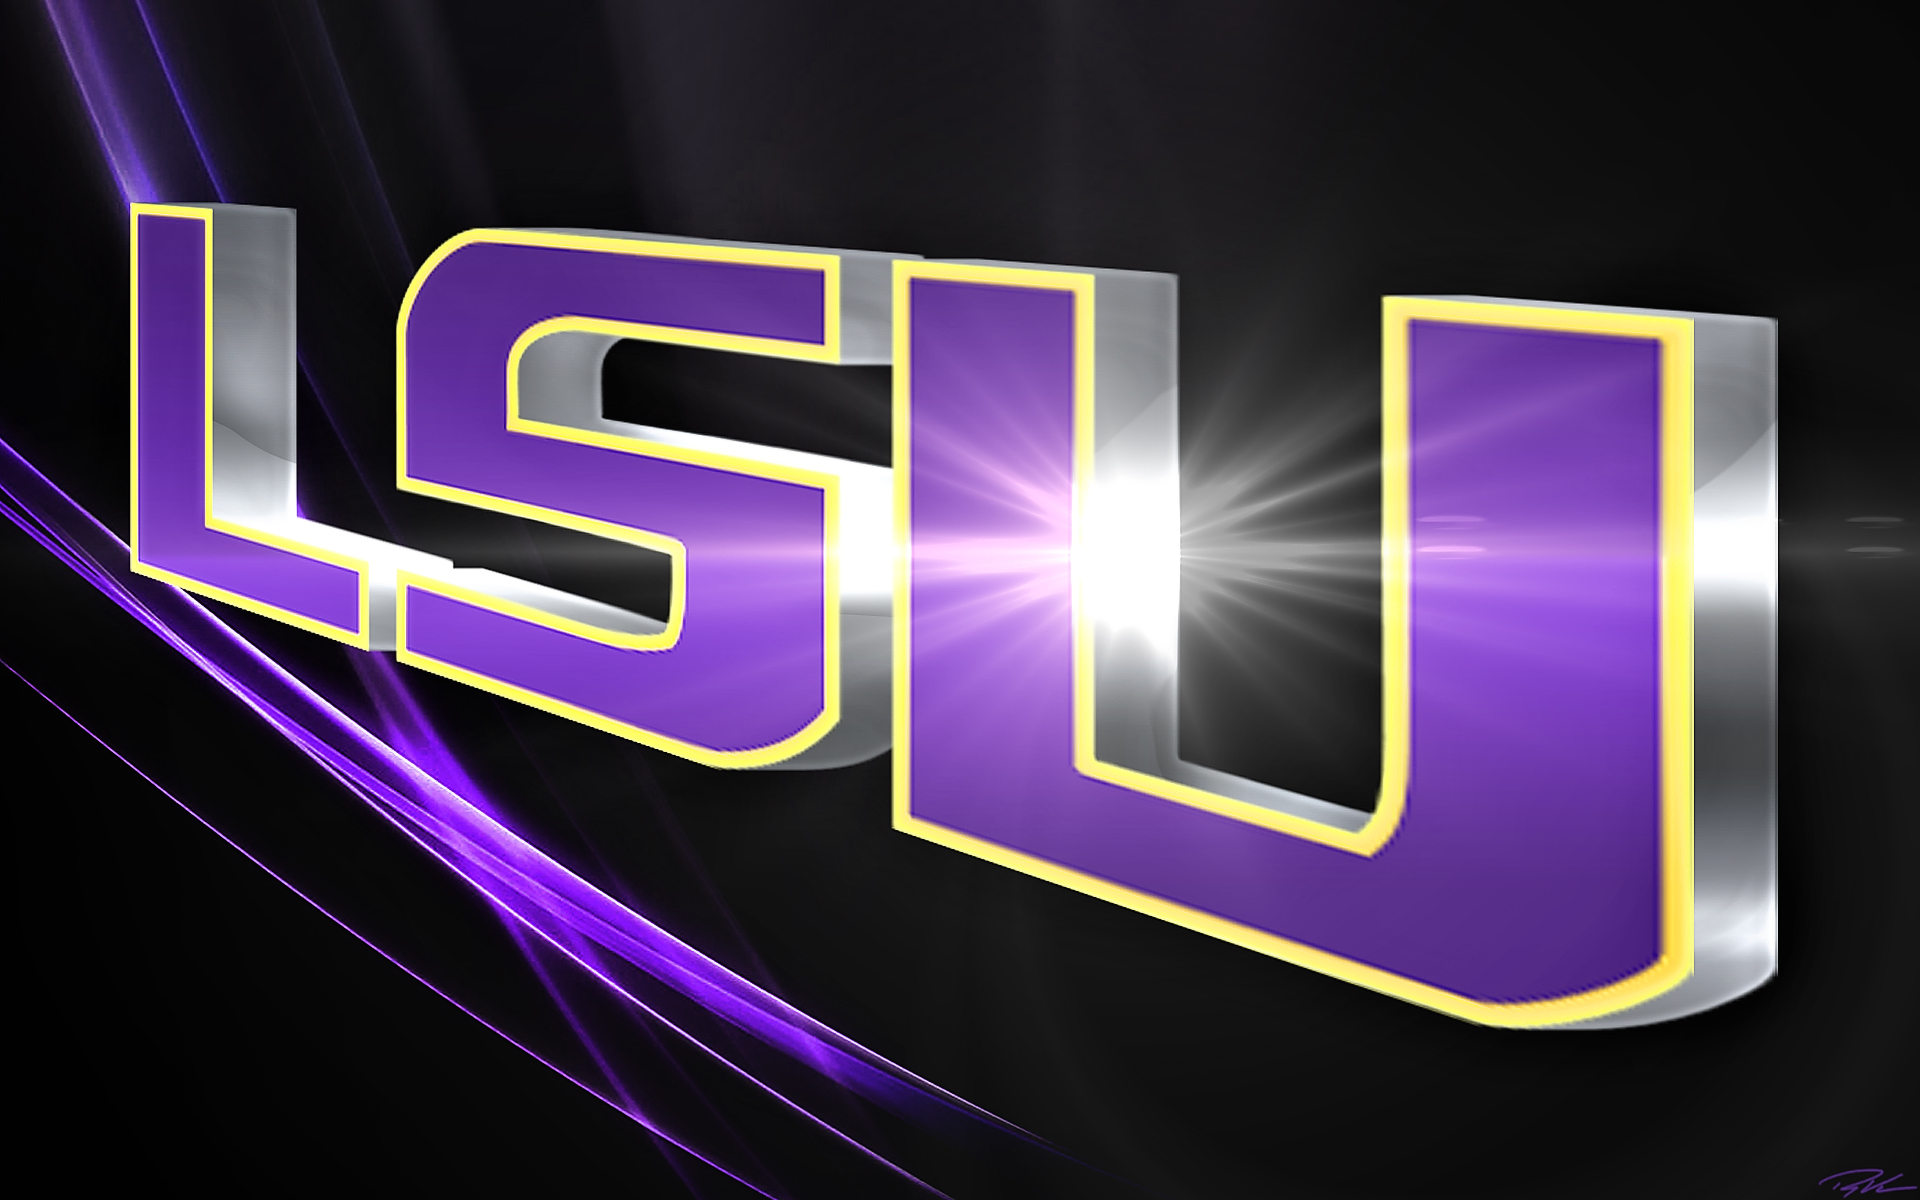 Lsu Tigers Wallpaper Lsu Tigers 1920x1200